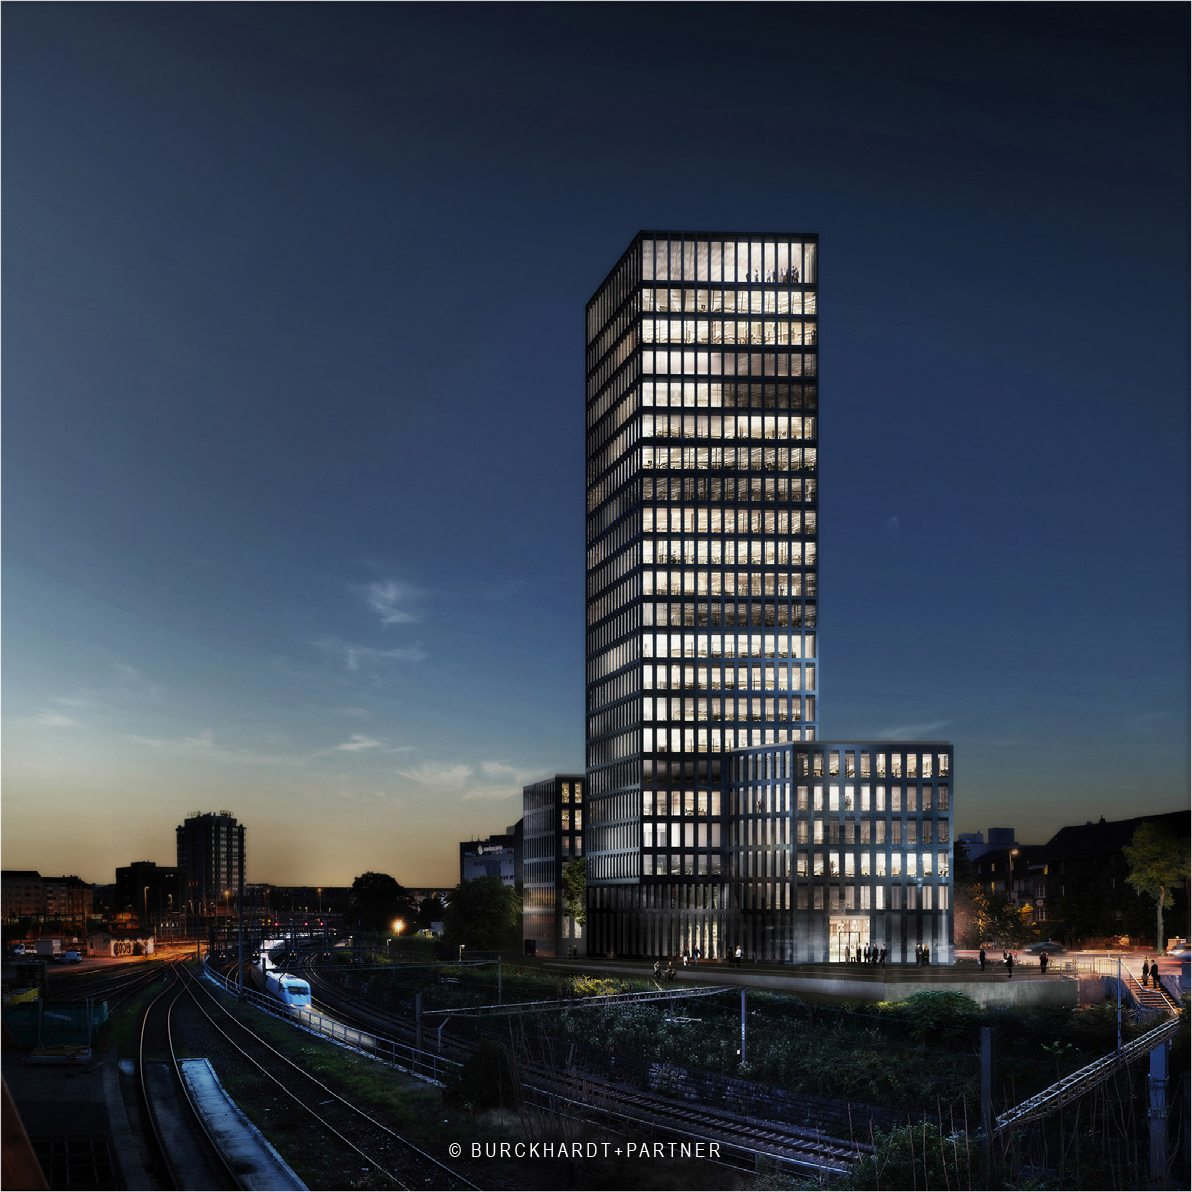 Grosspeter Tower (Burckhardt+Partner)